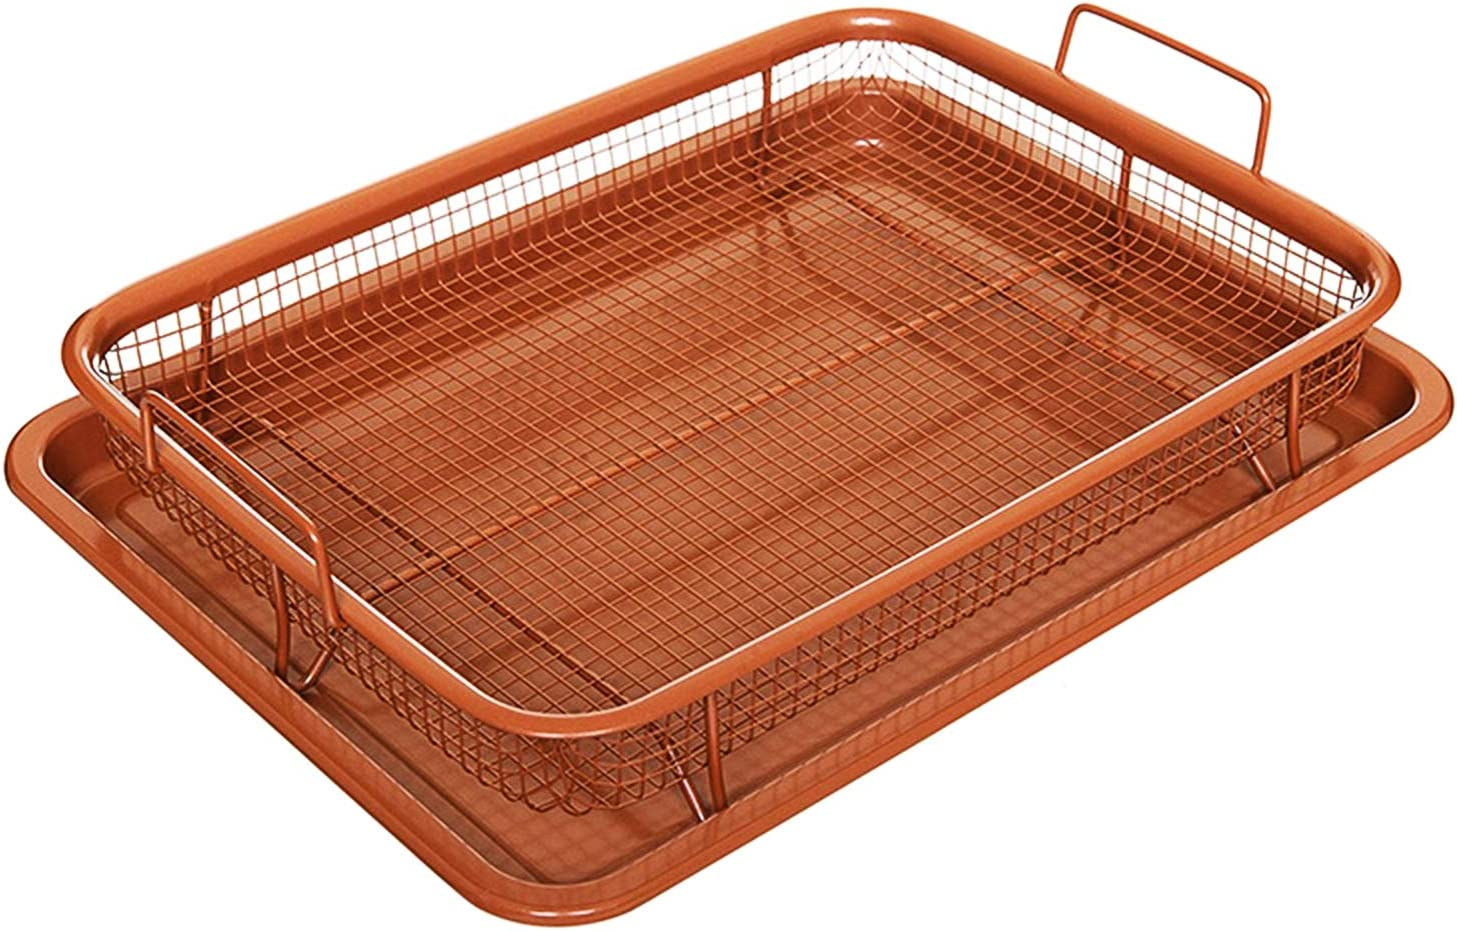 Non-Stick Baking Tray with Grill Crispy Basket Copper Crisper Air Fryer Pan Set of 2